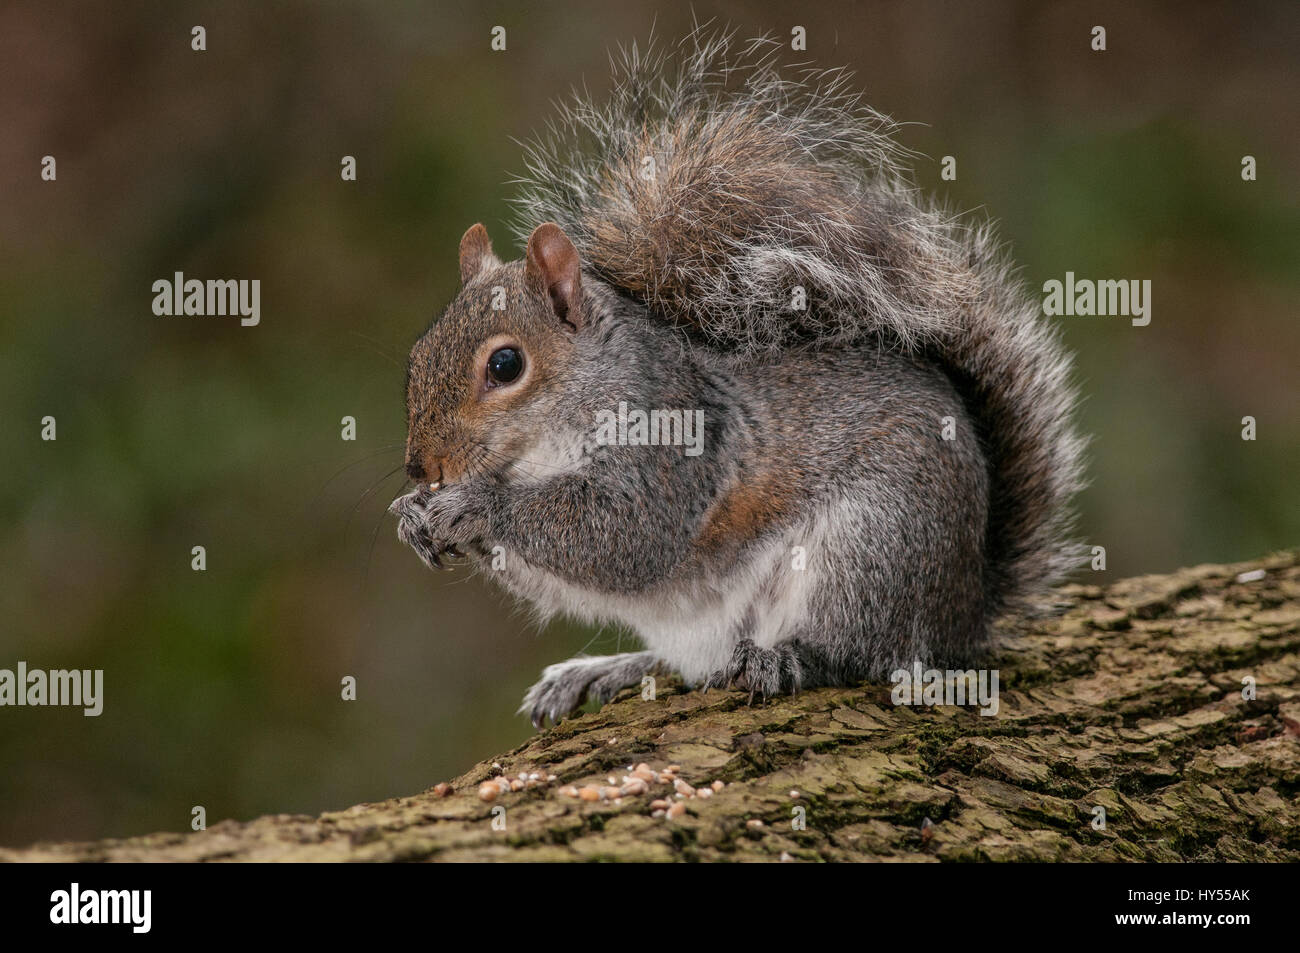 Grey Squirrel - Stock Image